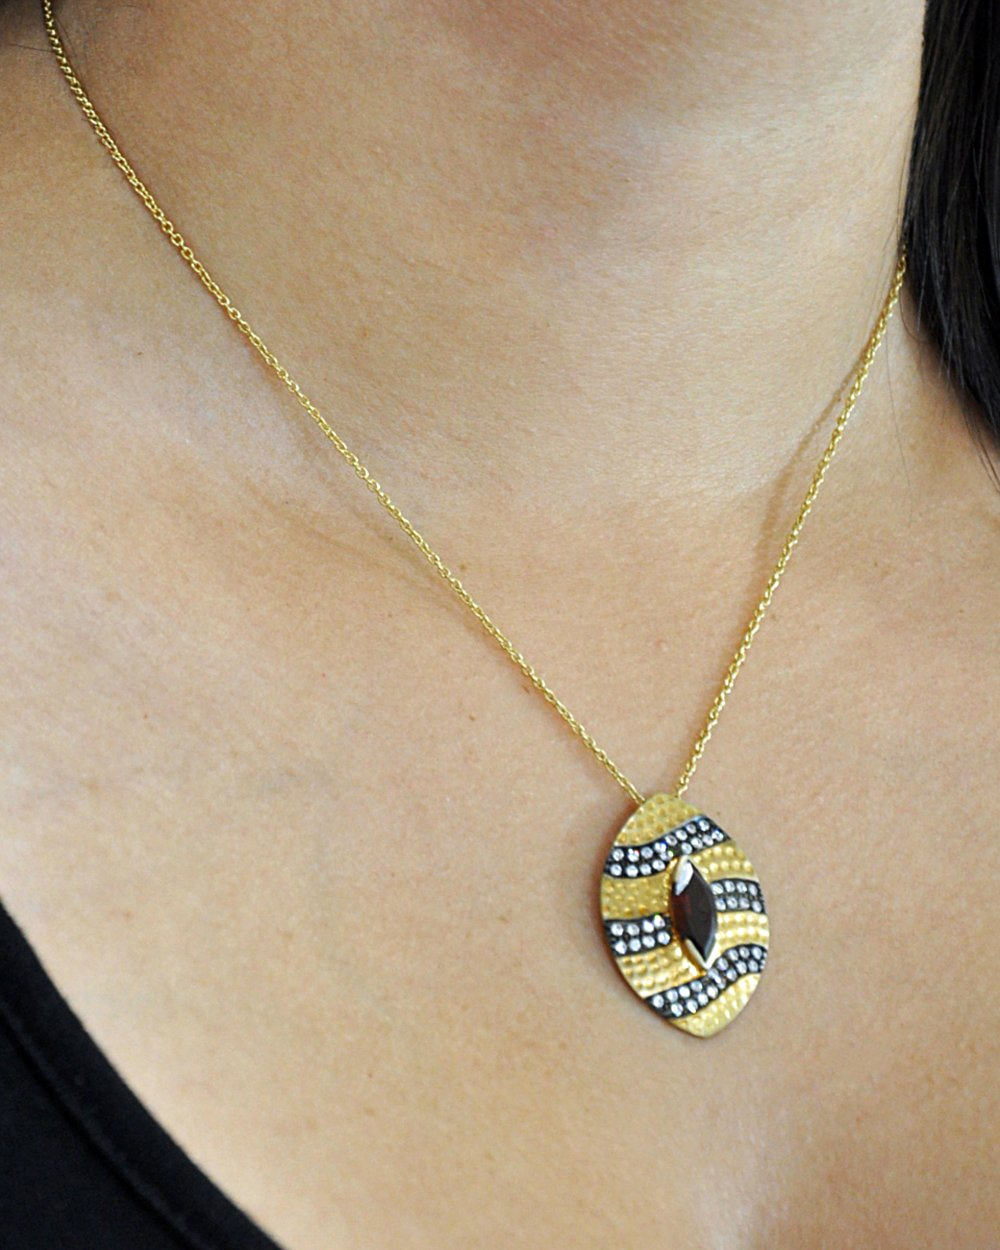 Oval Garnet and Crystal Pendant Necklace in Gold Vermeil